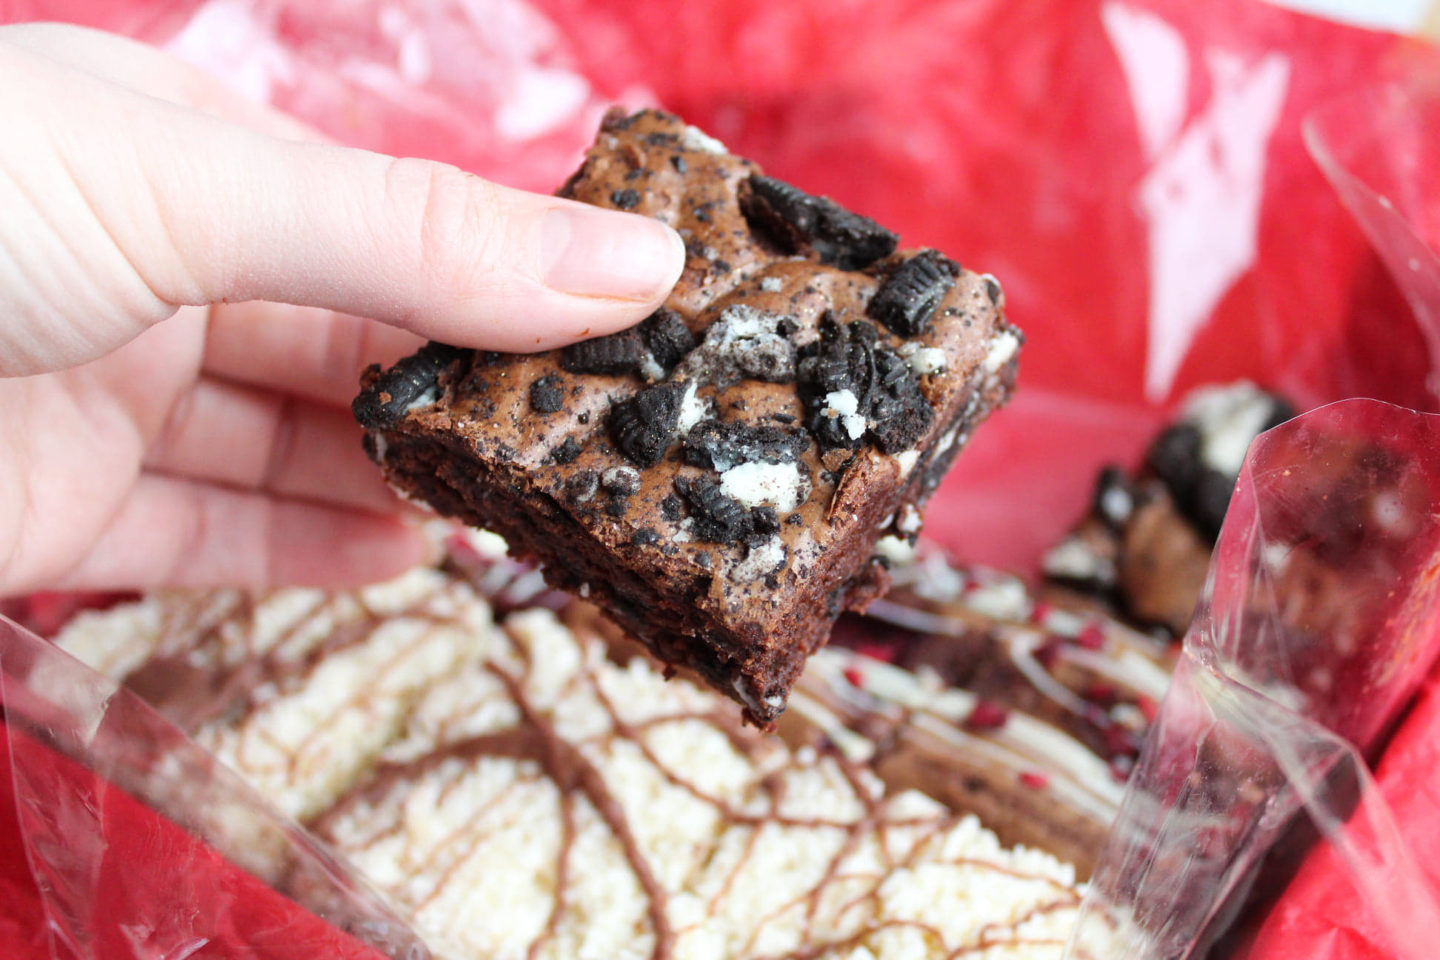 Kiss and Bake Up | Gourmet Brownies Delivered to Your Door